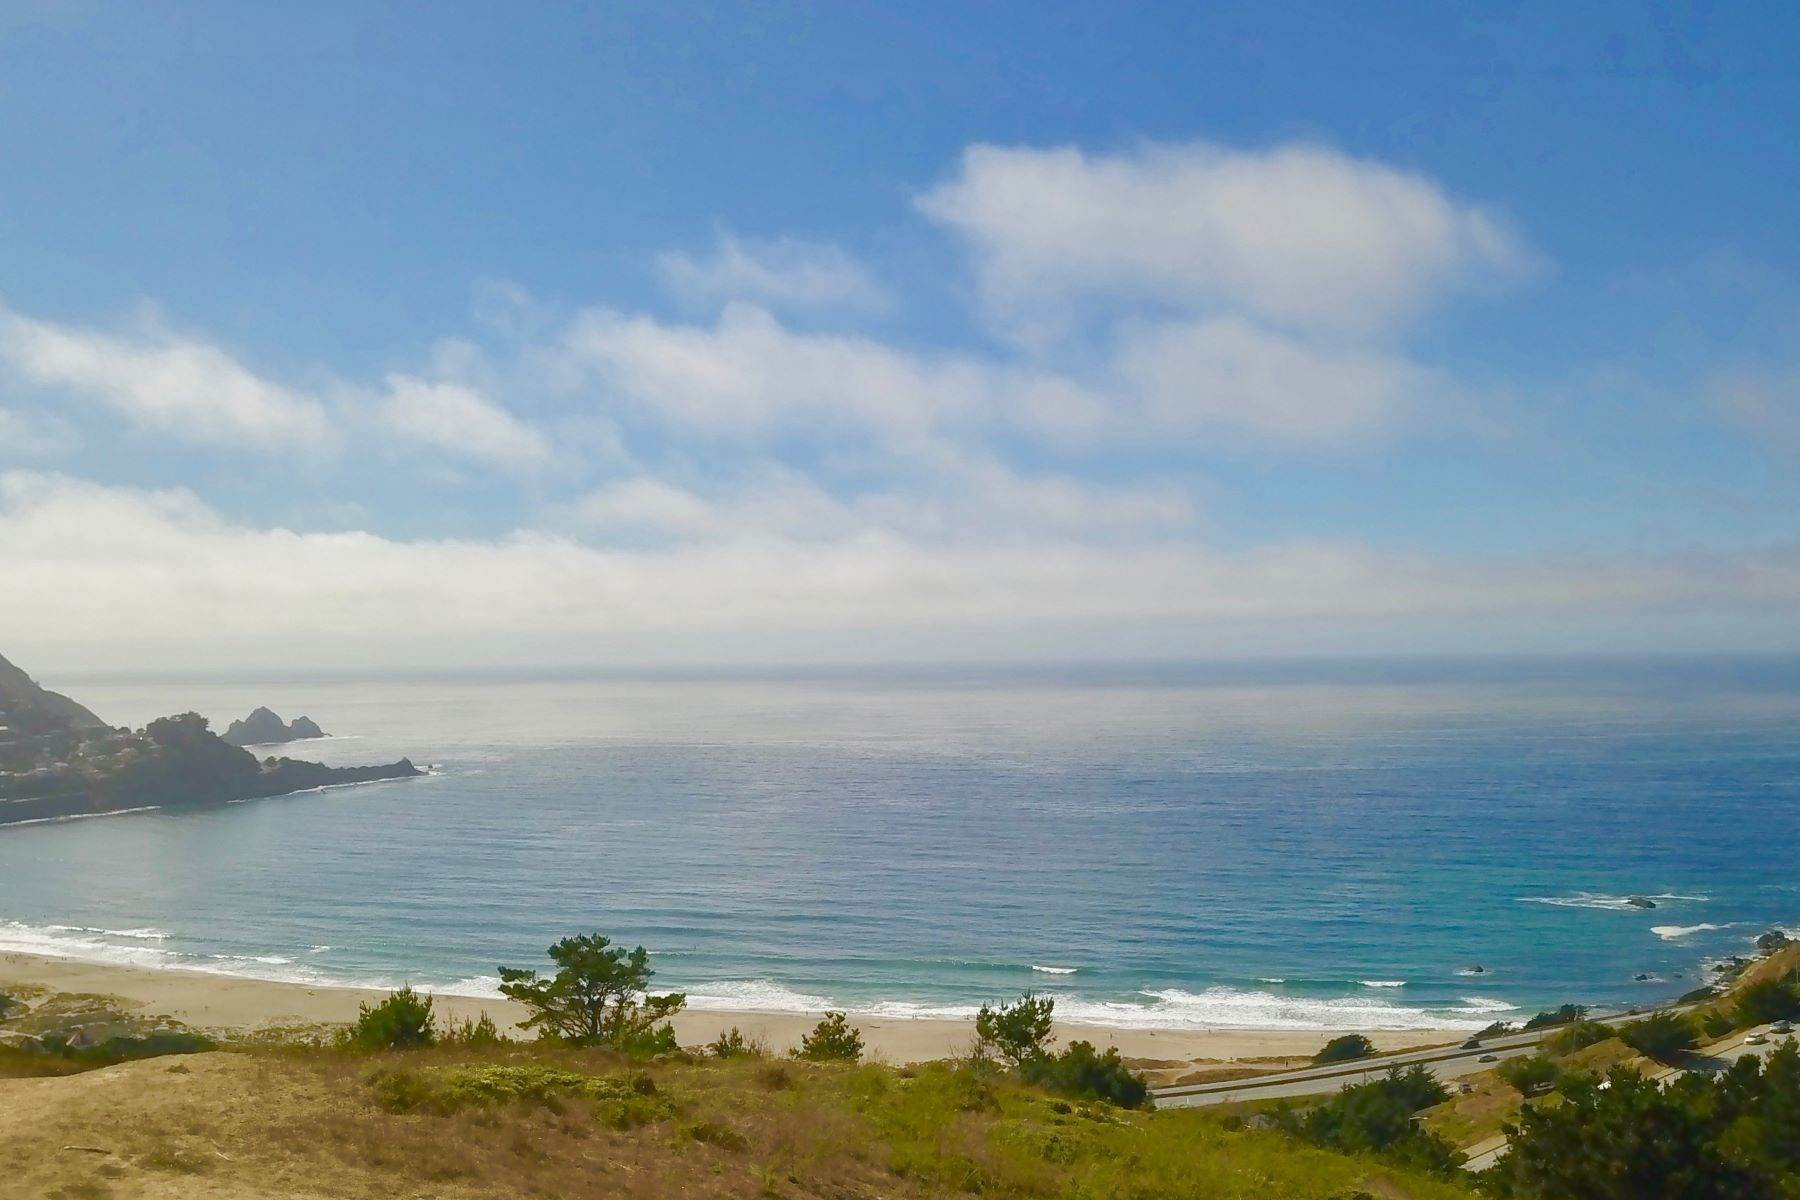 Land at 9 Lots with Stunning Ocean and Mountain Views; Ranging from One to Two Acres One Ohlone Drive Pacifica, California 94044 United States